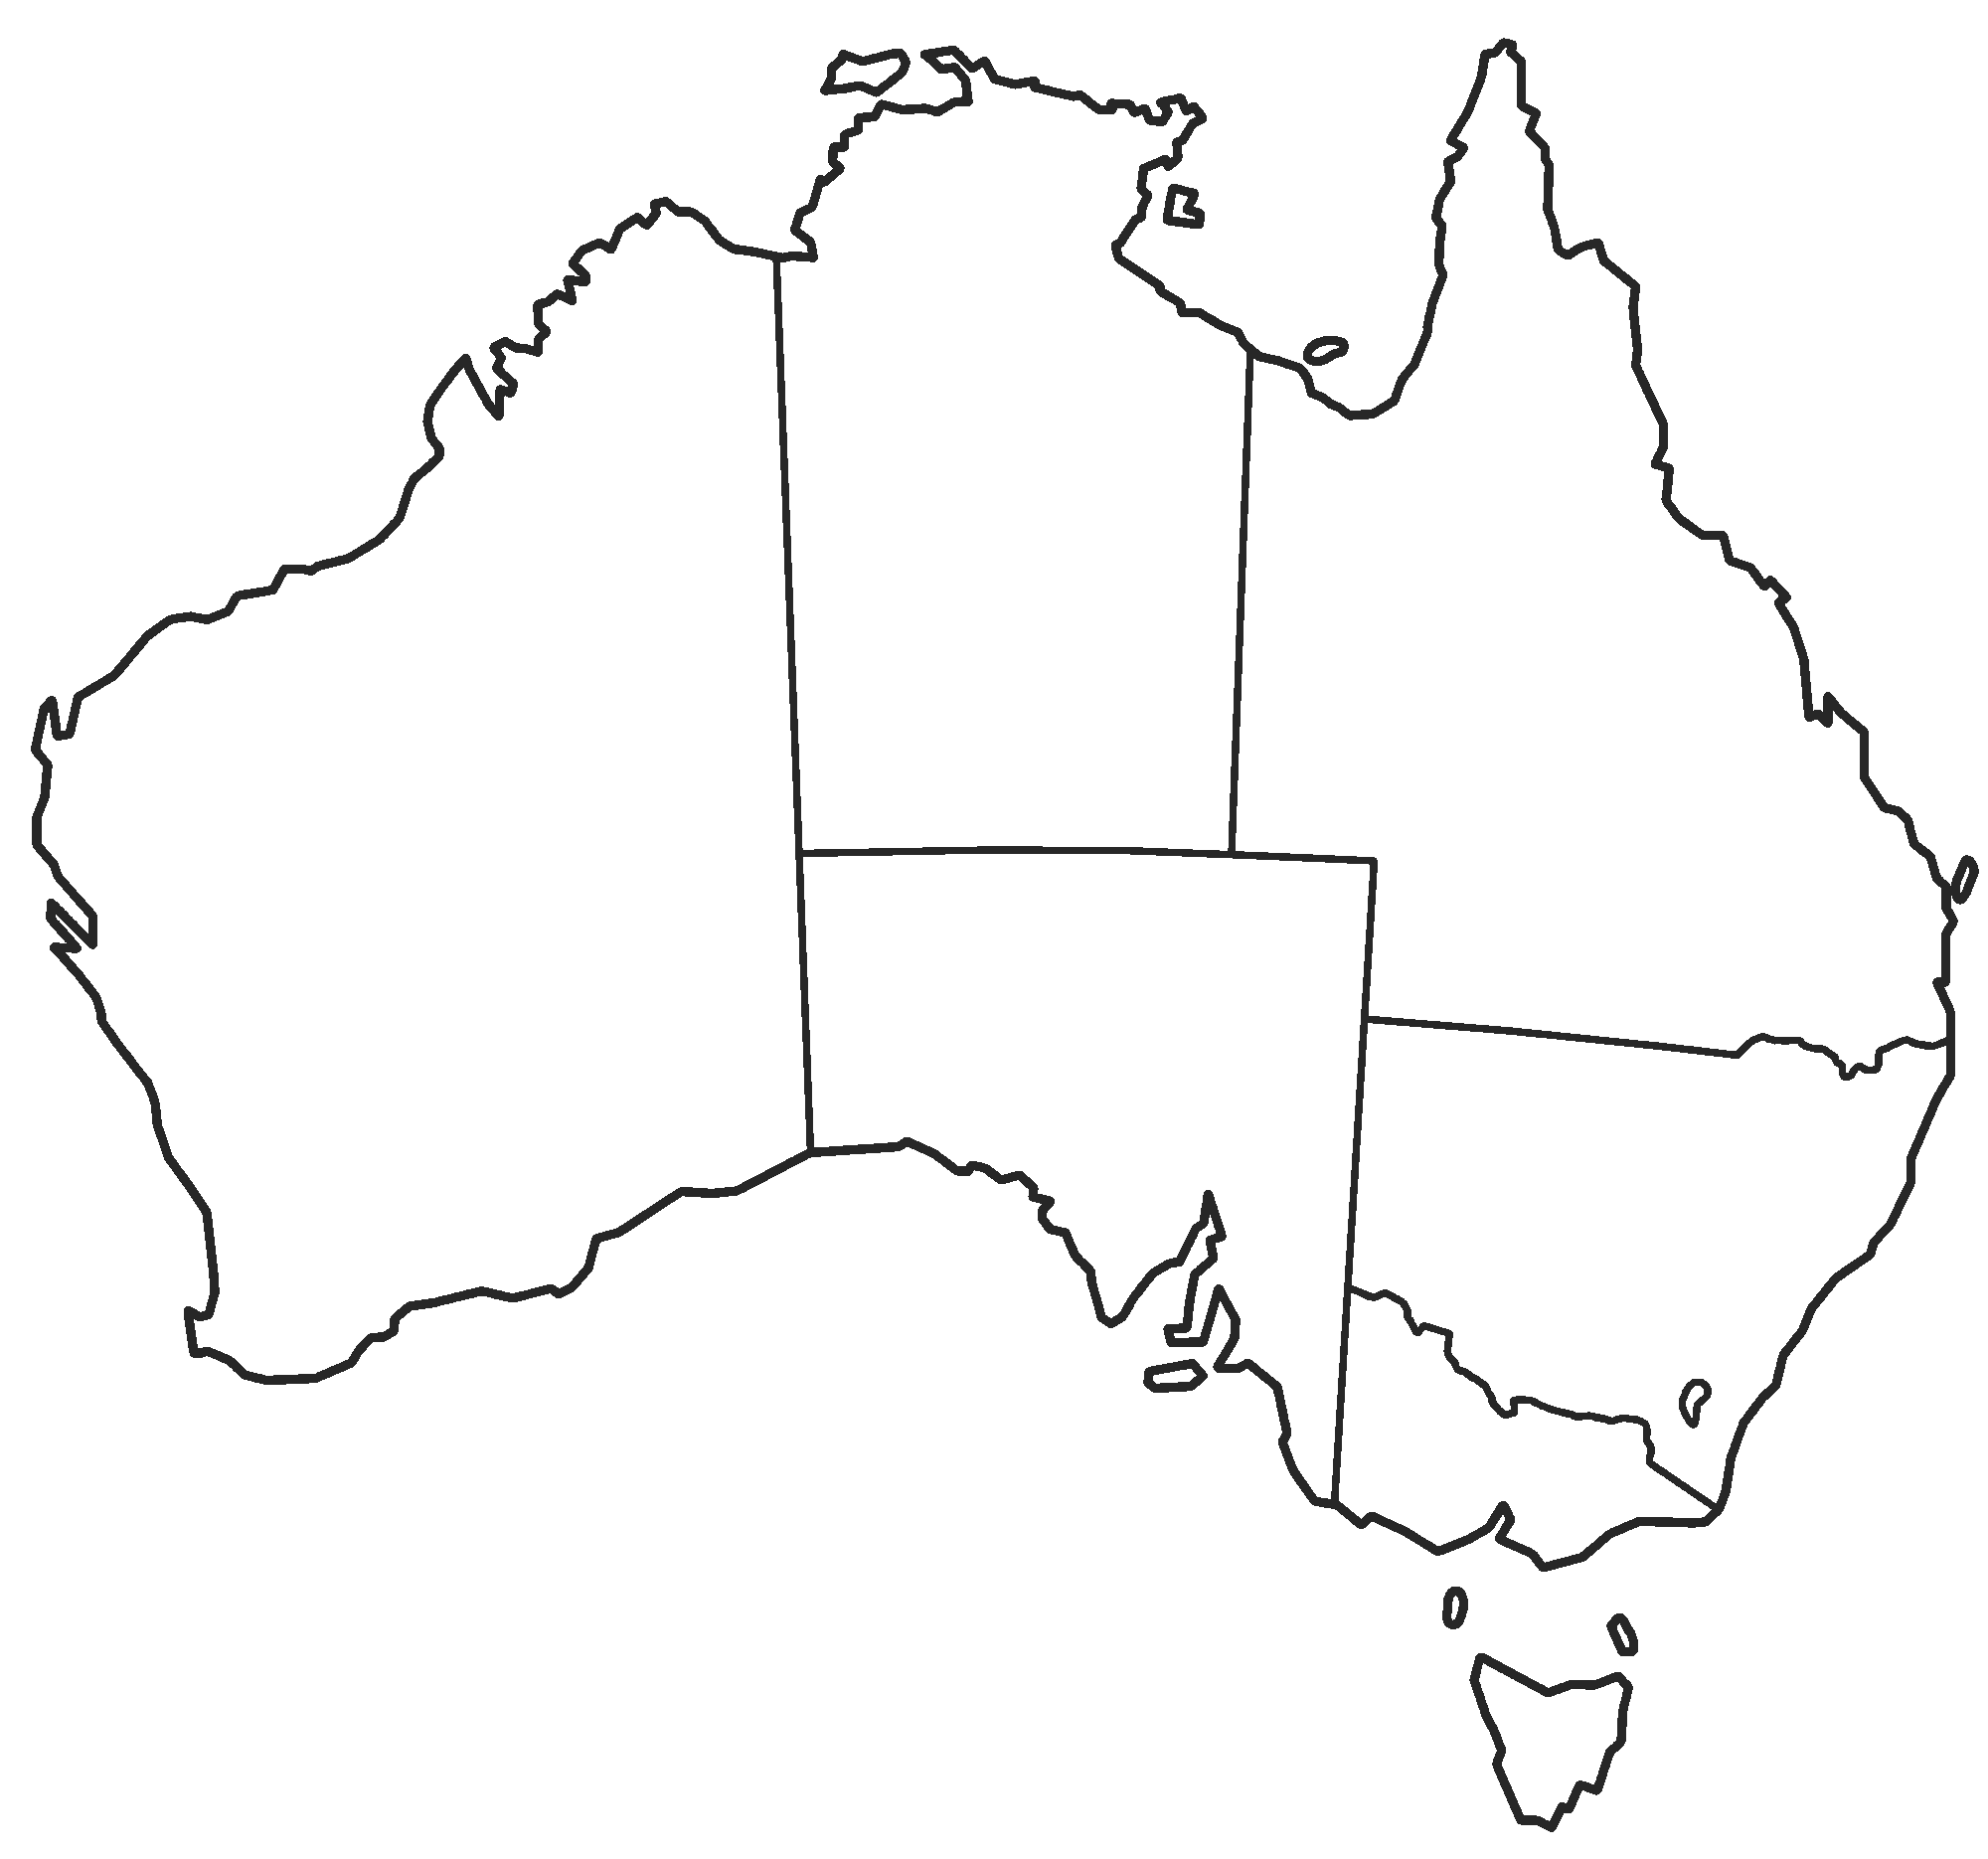 Australia clipart simple. Outline within map noavg